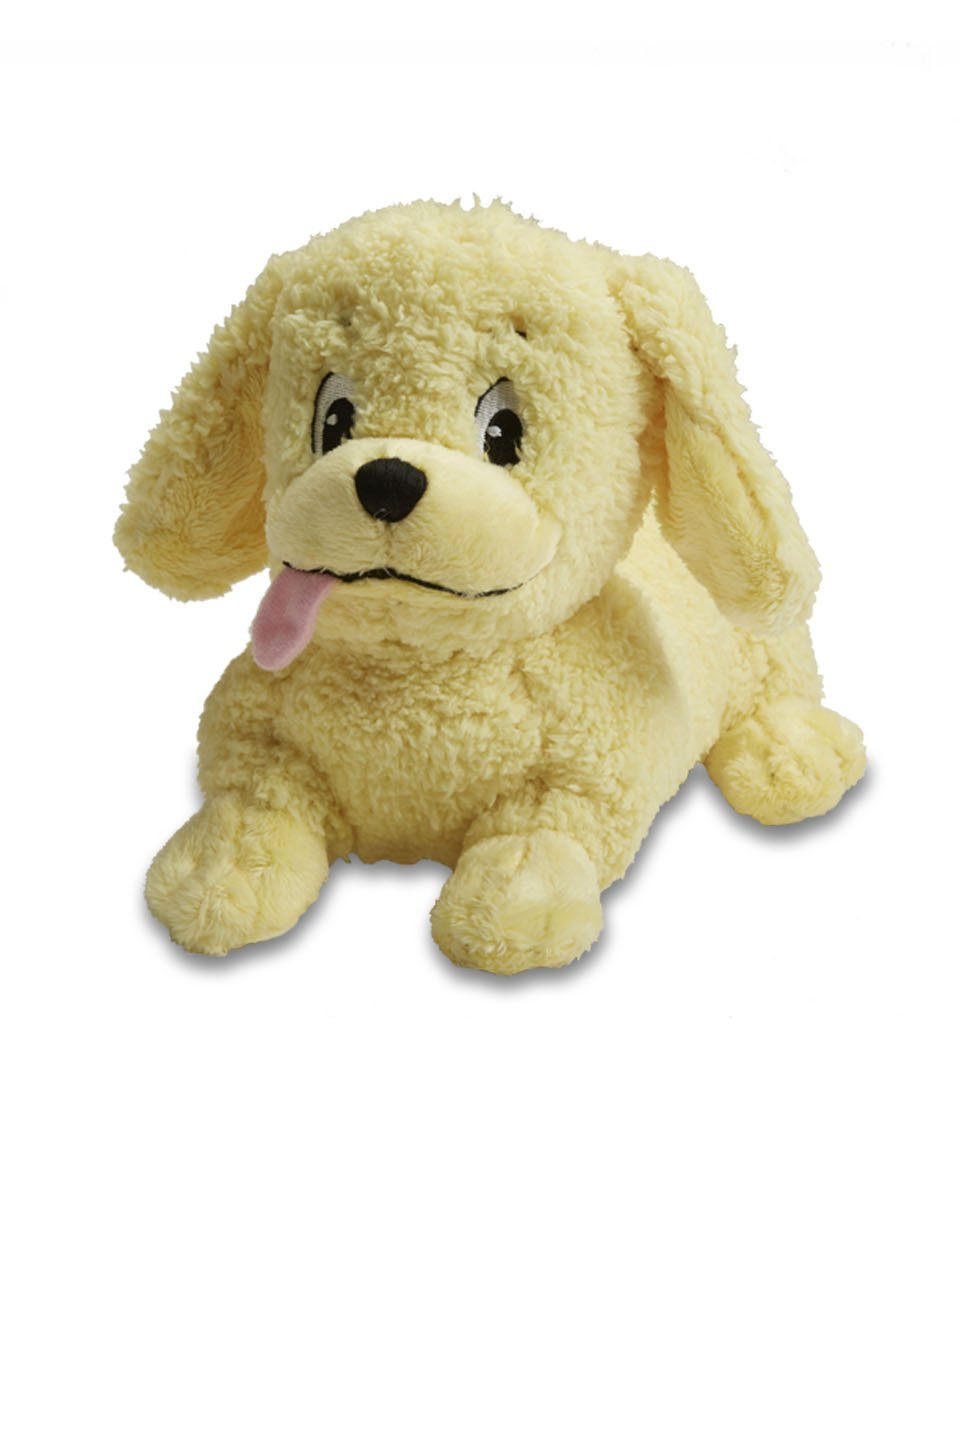 Plush toy to match organic kids pajamas